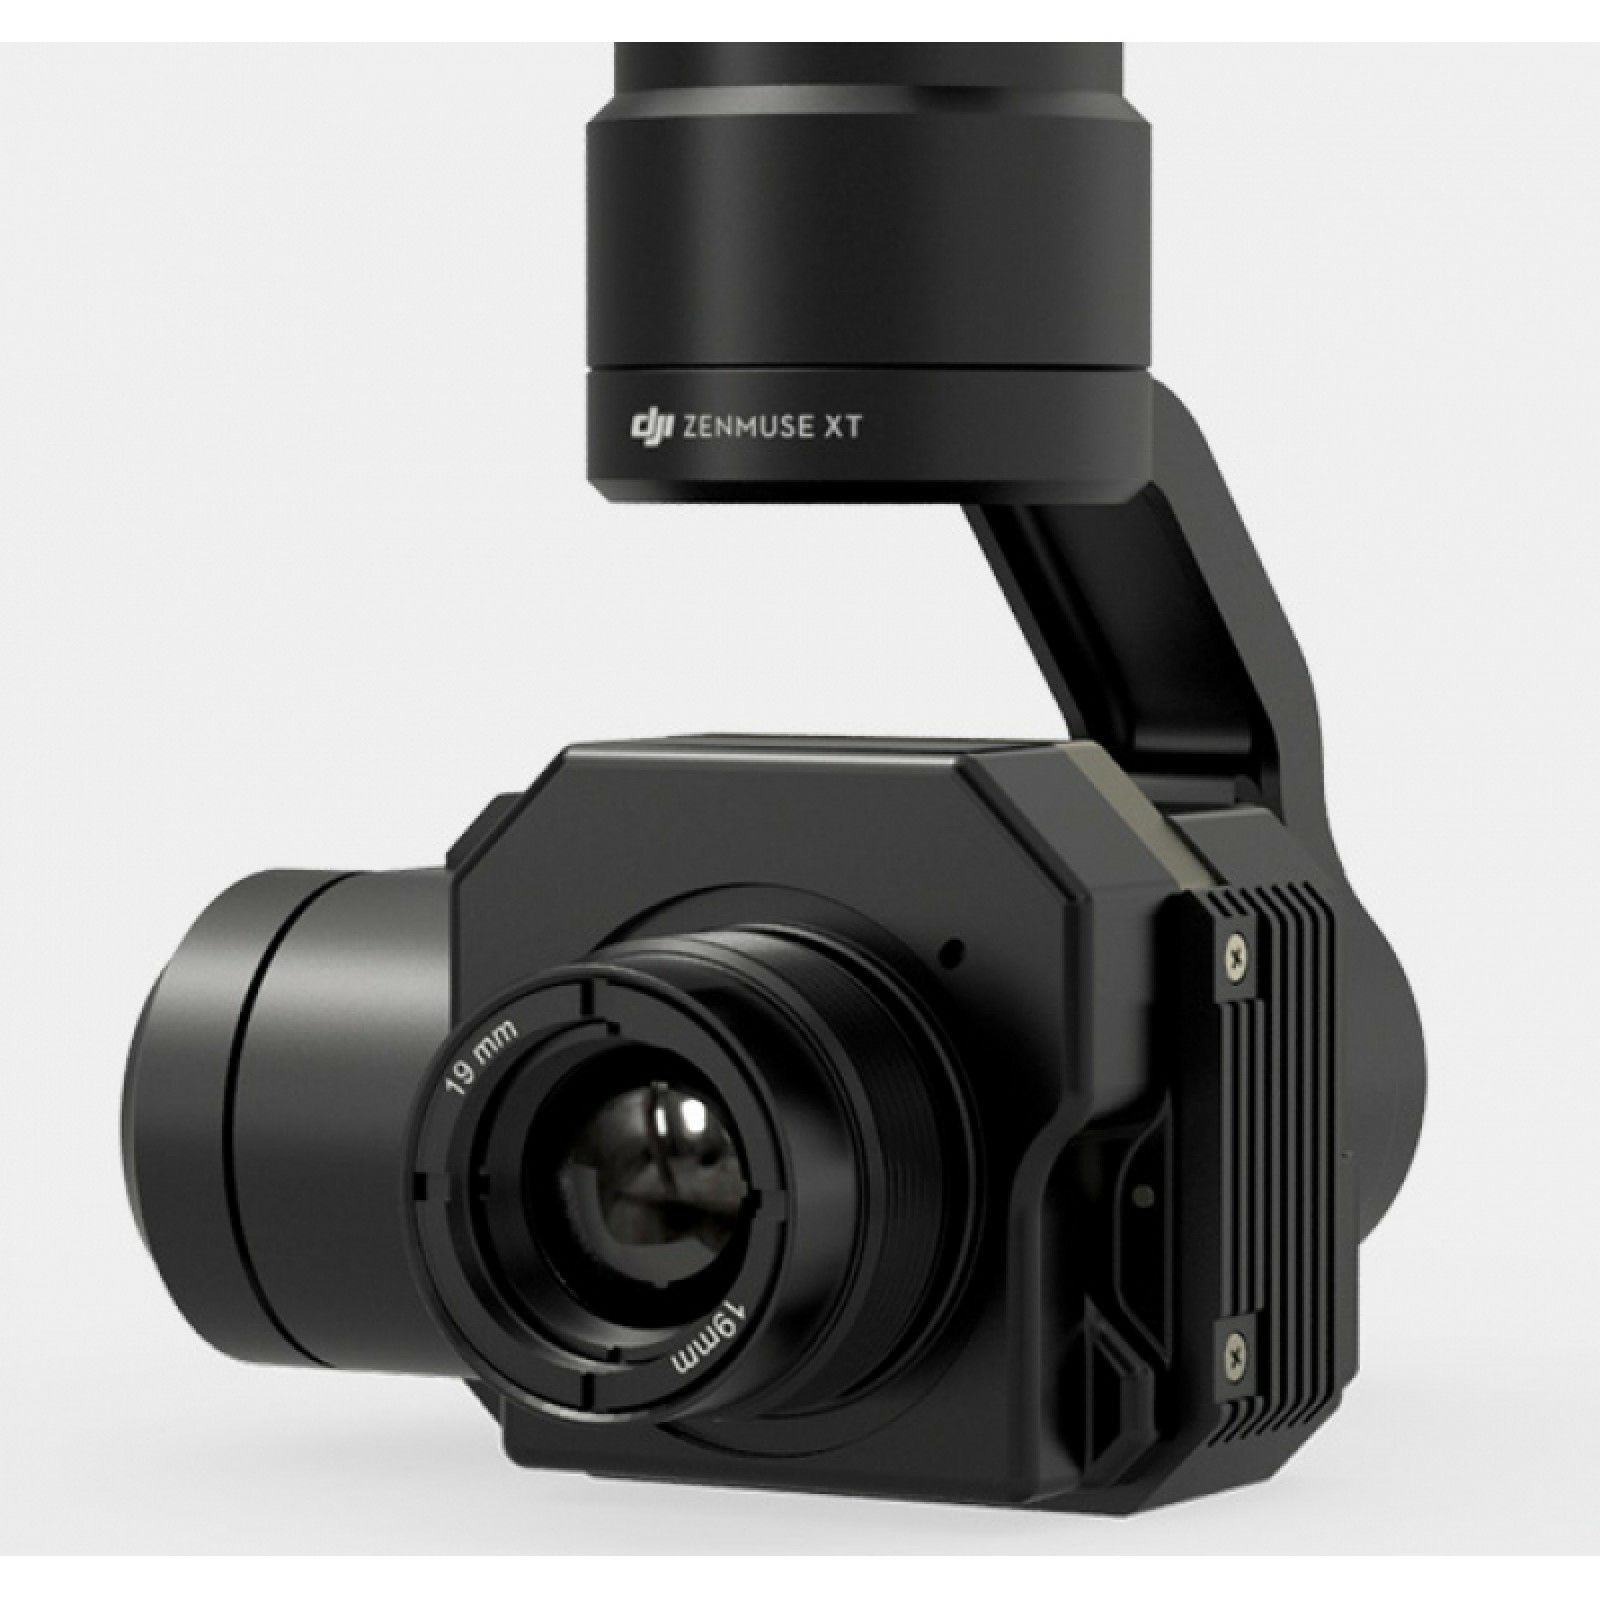 DJI Zenmuse XT Thermal Camera ZXTB06SP 336x256 9Hz (Slow frame) Lens 6.8mm objektiv termovizijska kamera (point temperature measurement model)